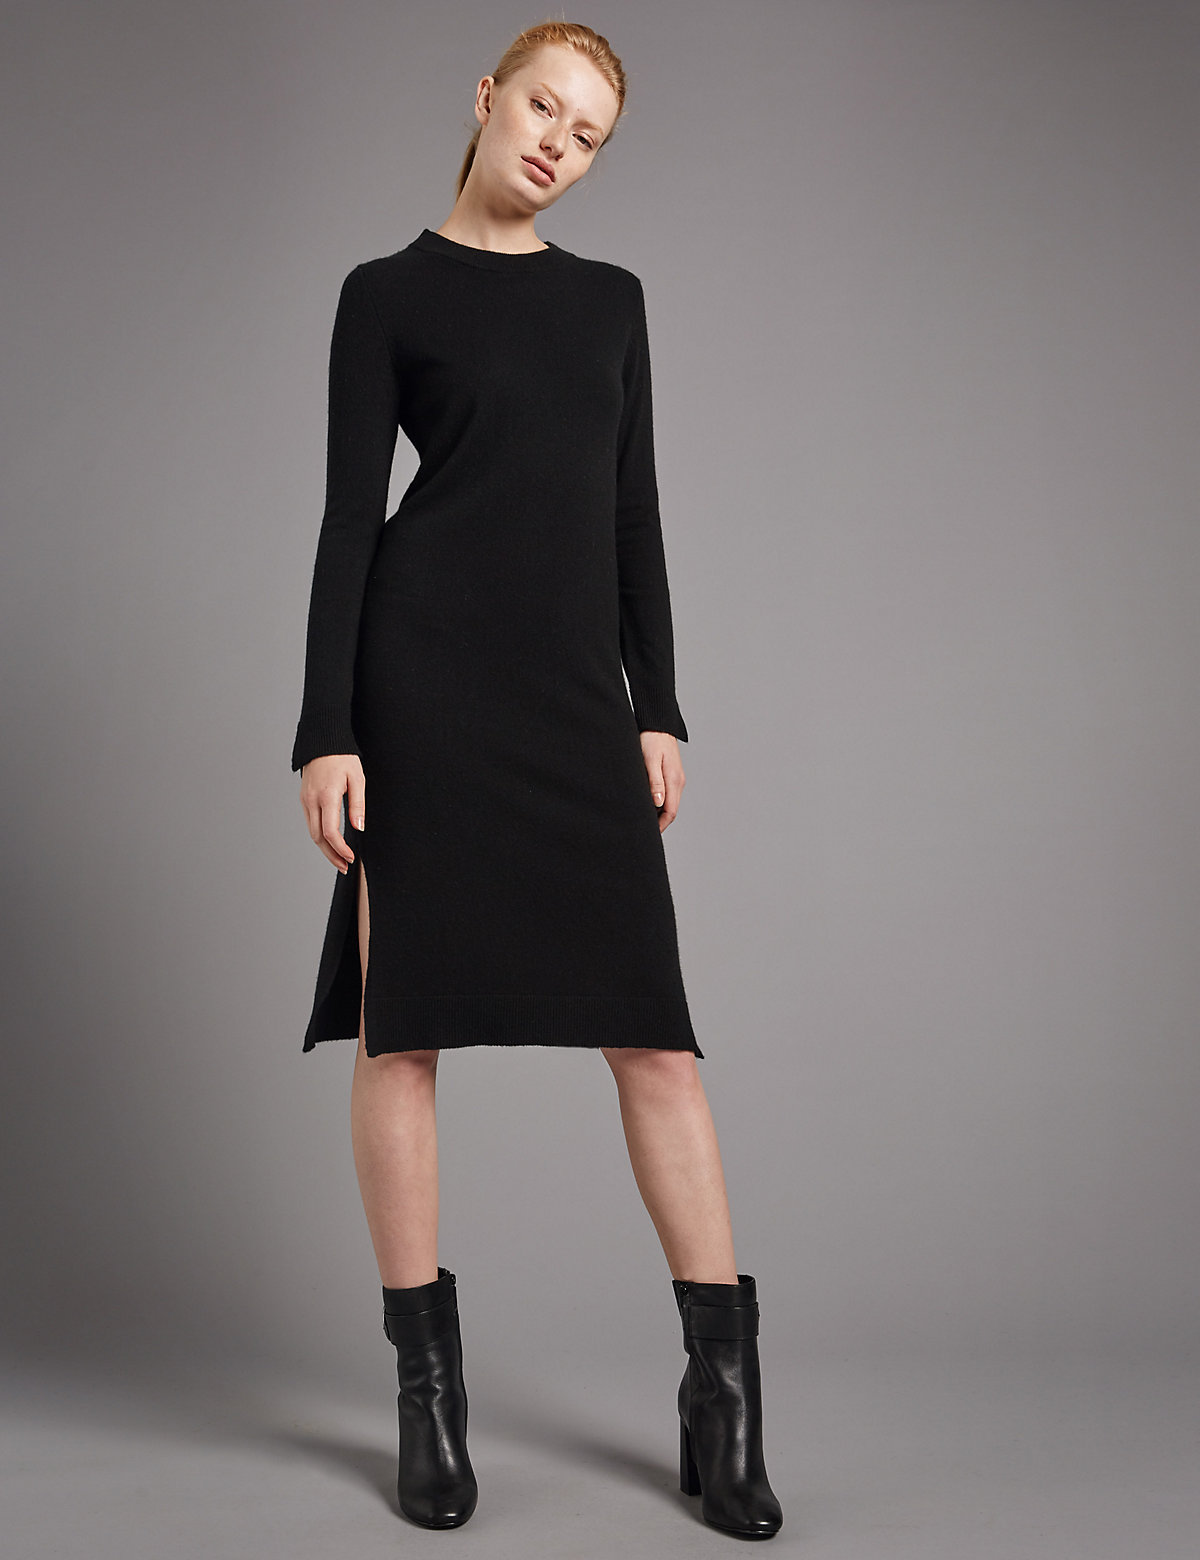 Autograph Pure Cashmere Long Sleeve Dress